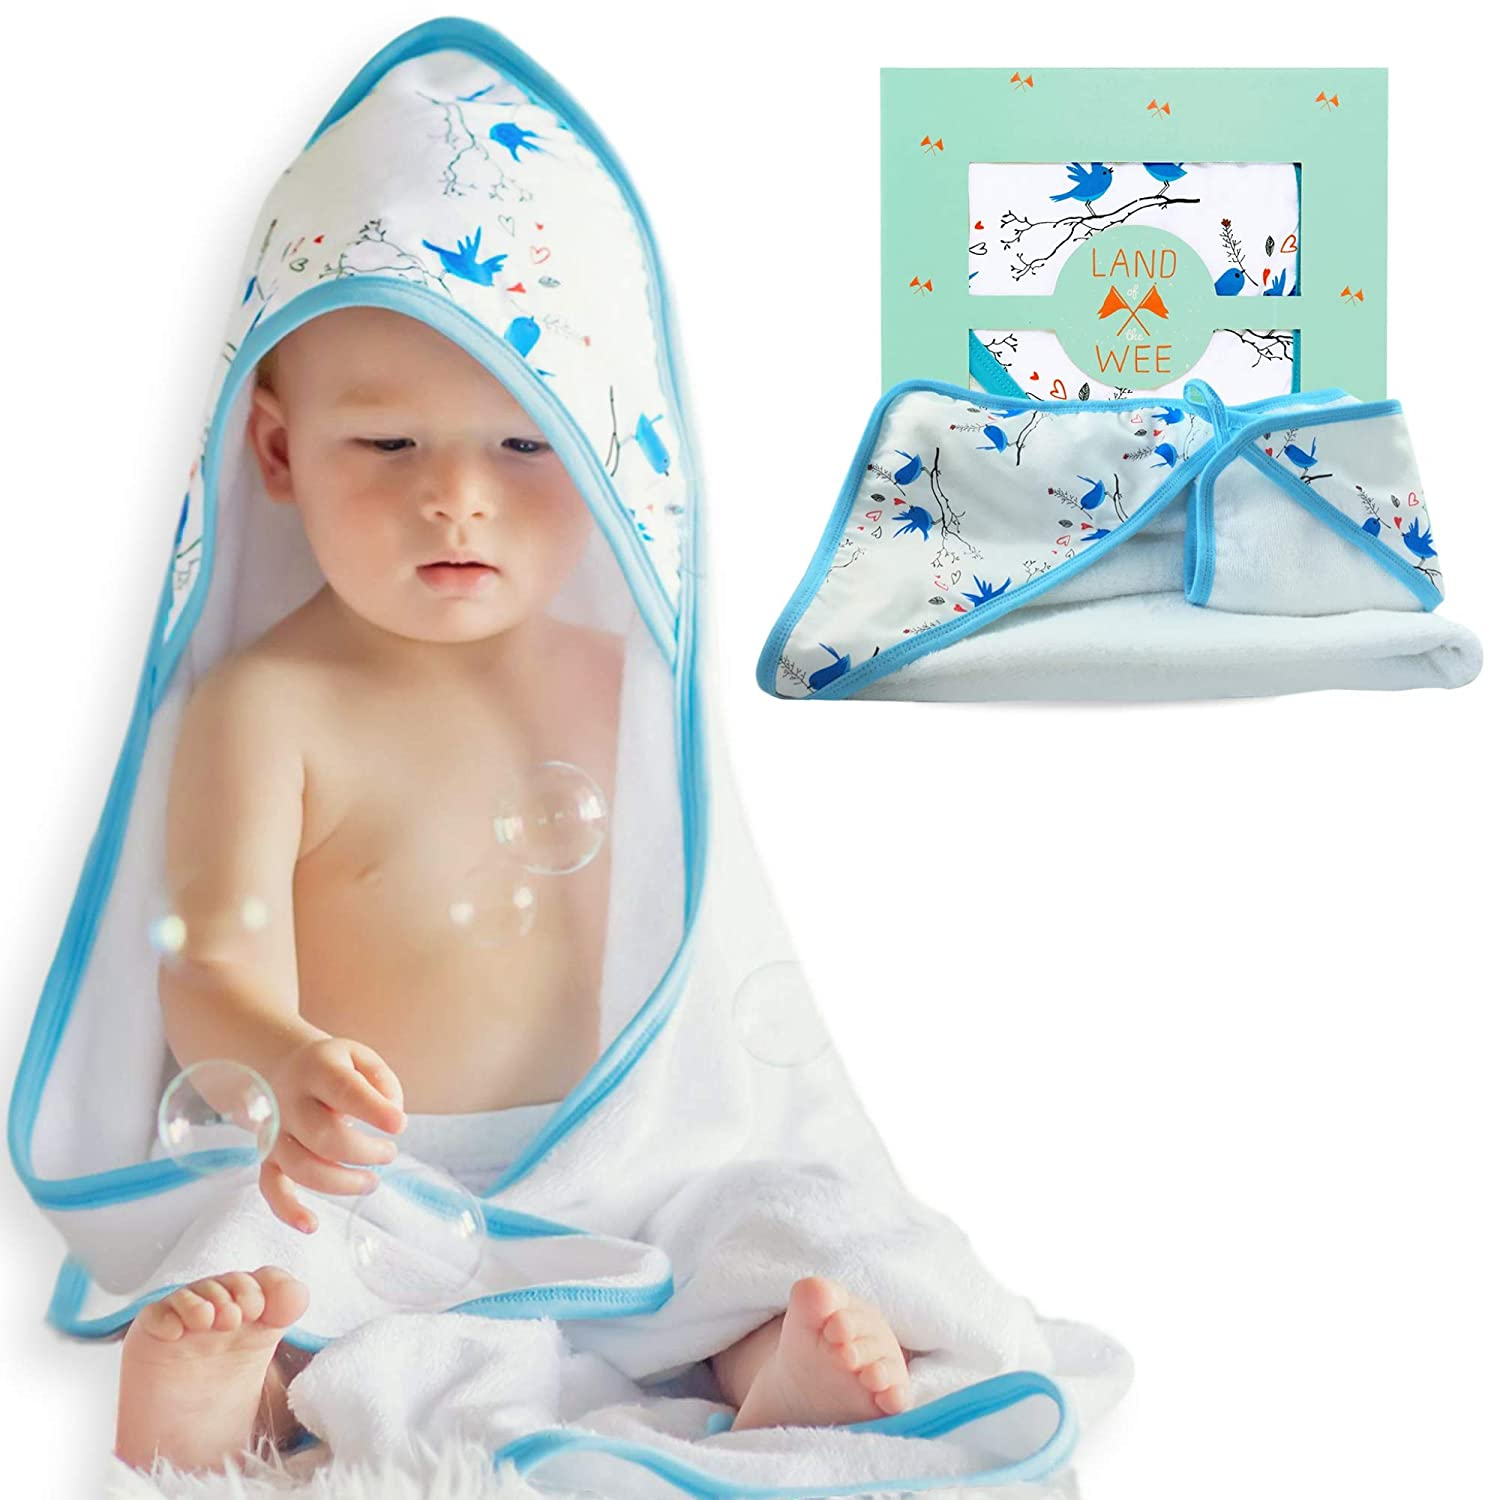 Extra Soft Hooded Baby Bath Towel & Washcloth Set